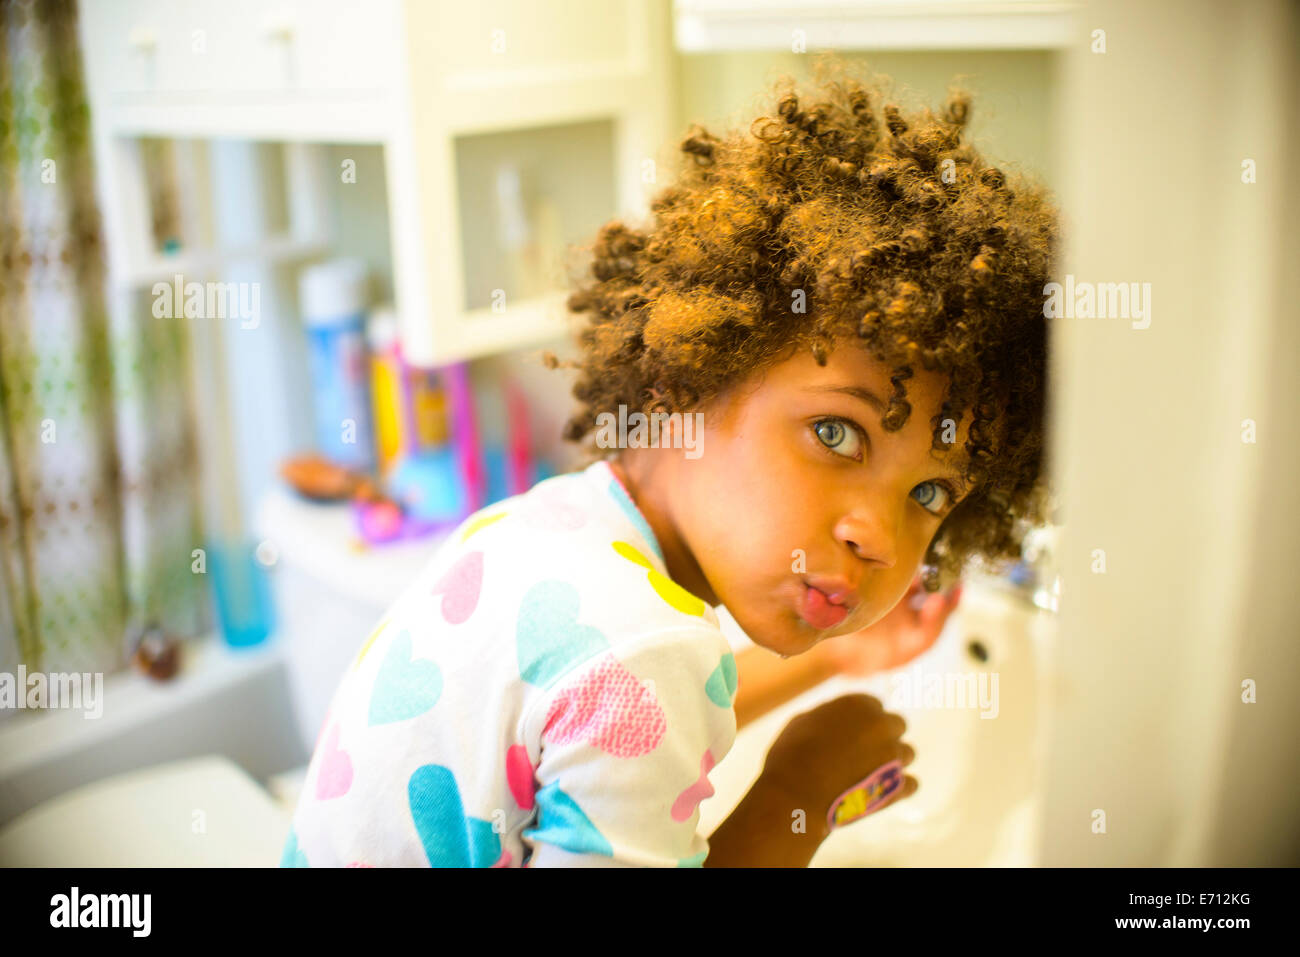 Portrait of girl rinsing mouth in bathroom - Stock Image